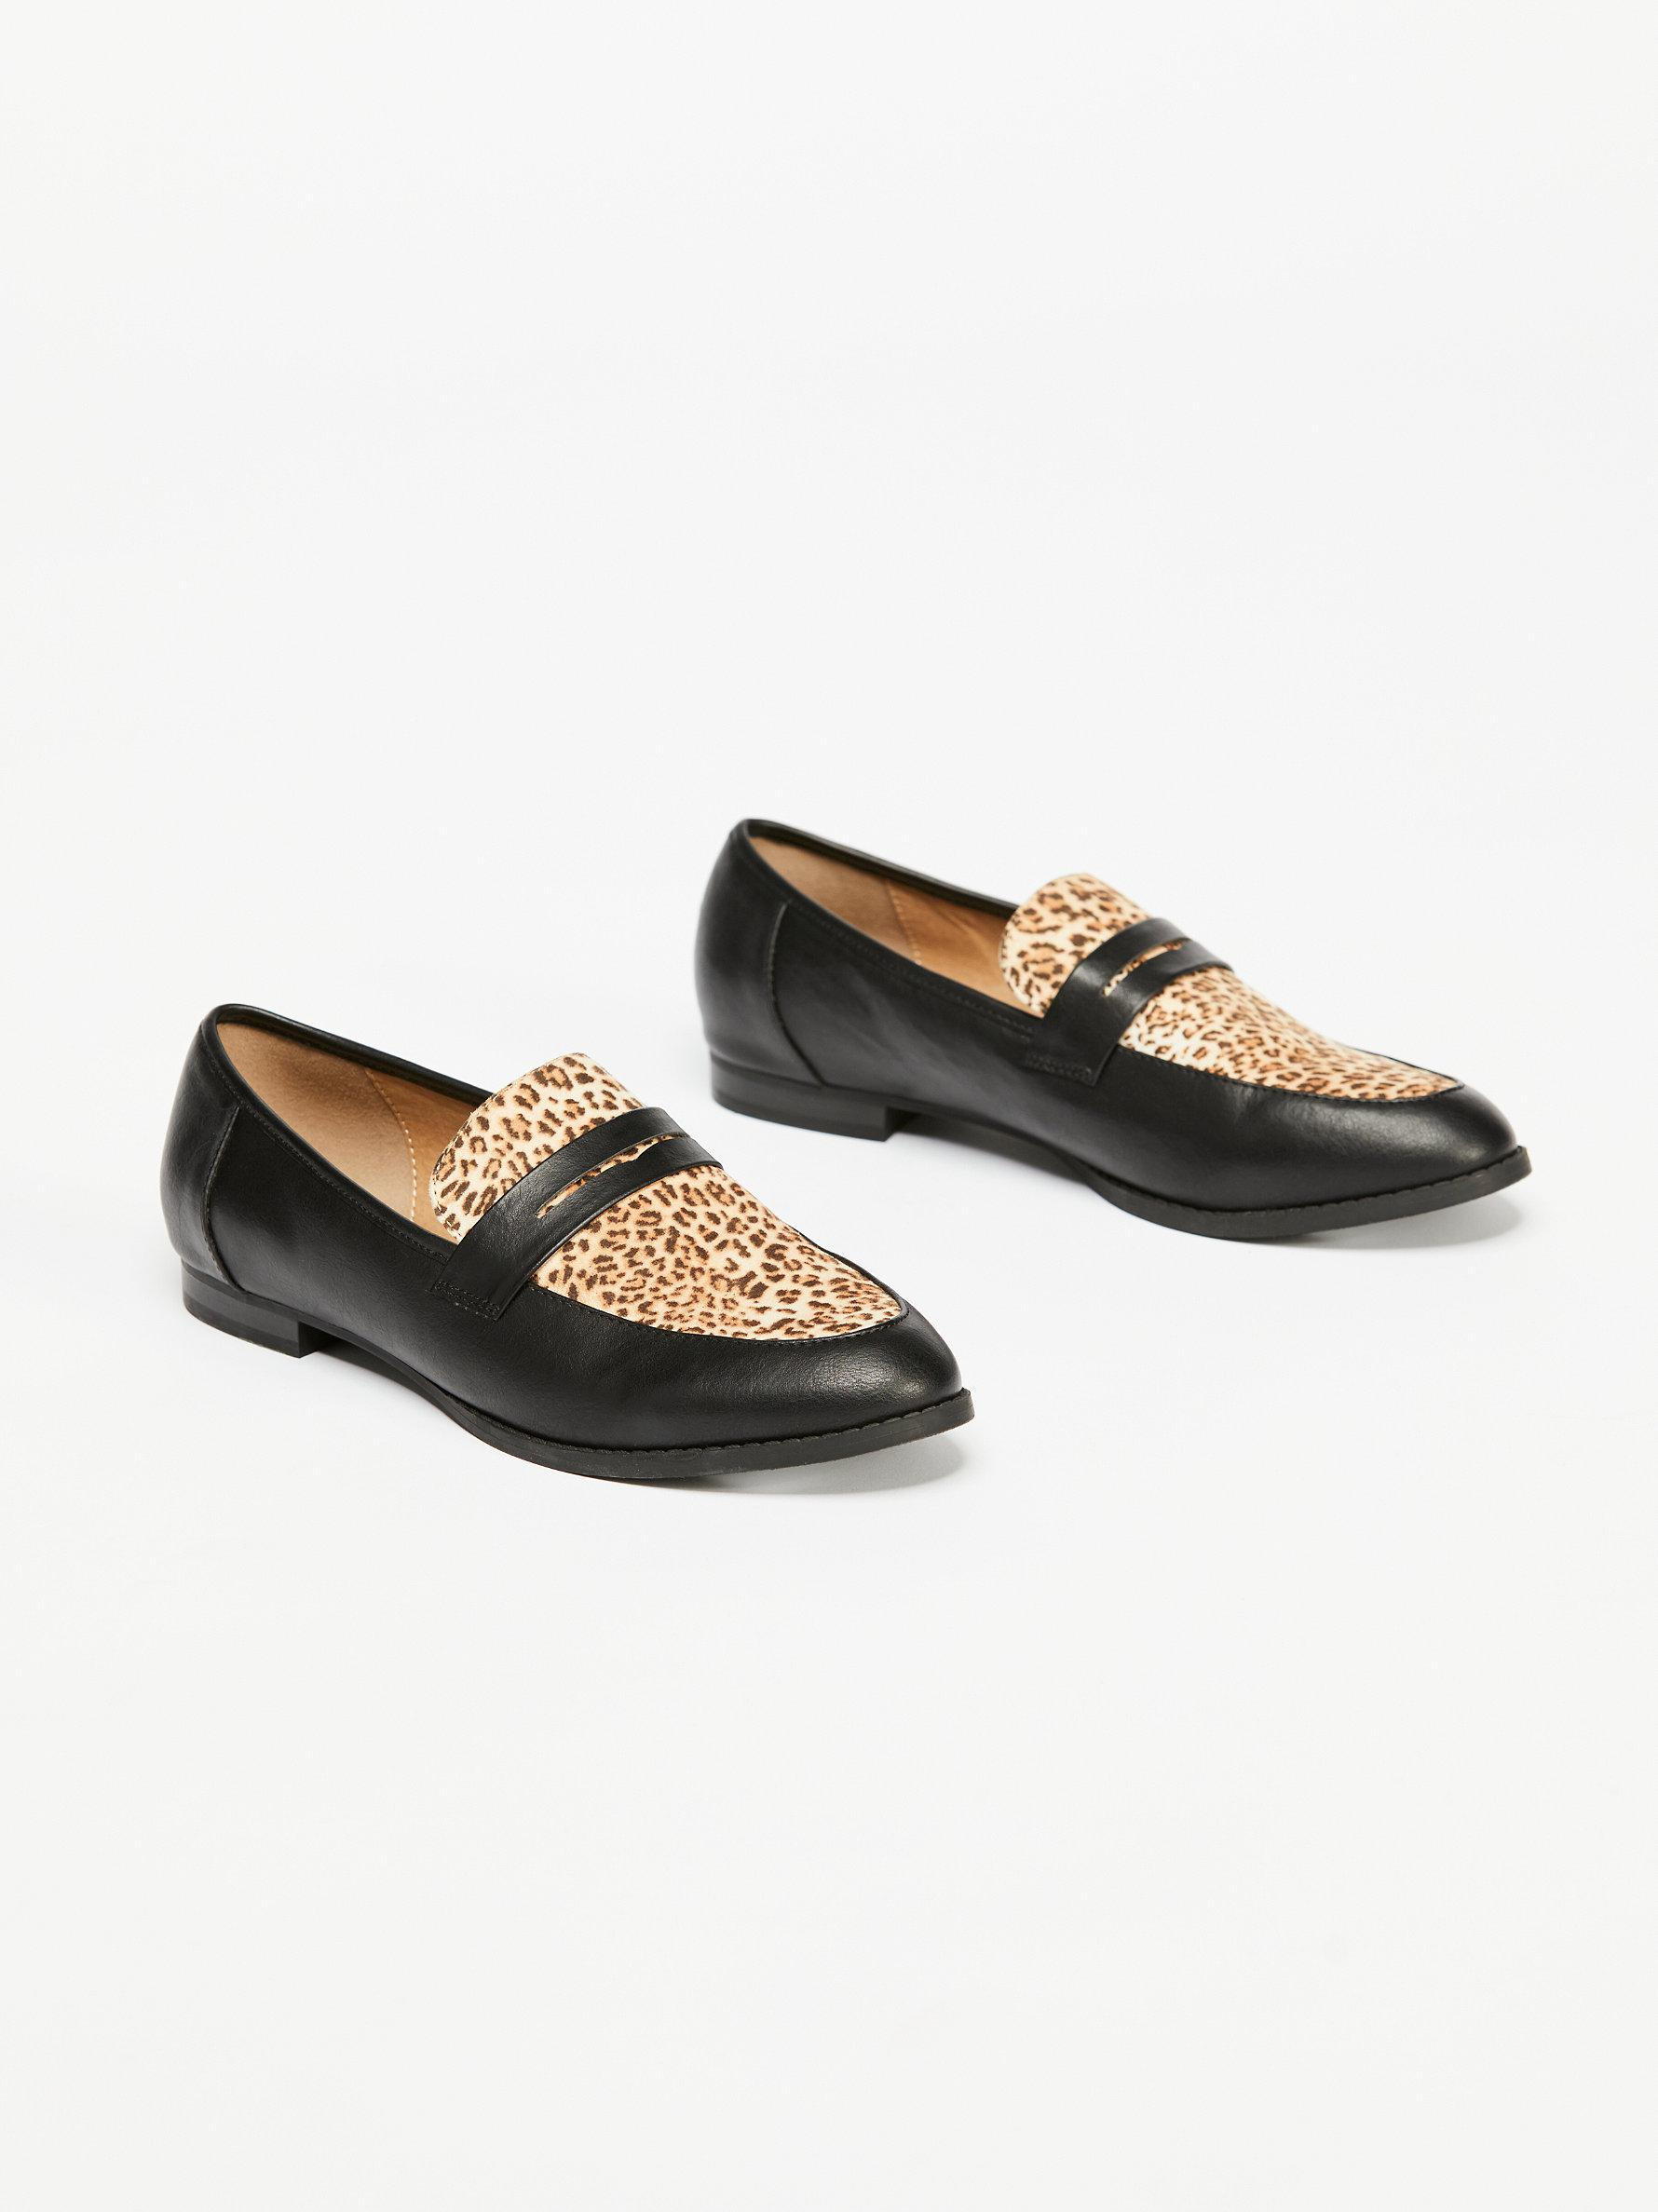 a7ac72bbd68 Free People Lou Lou Penny Loafer By Restricted in Black - Lyst